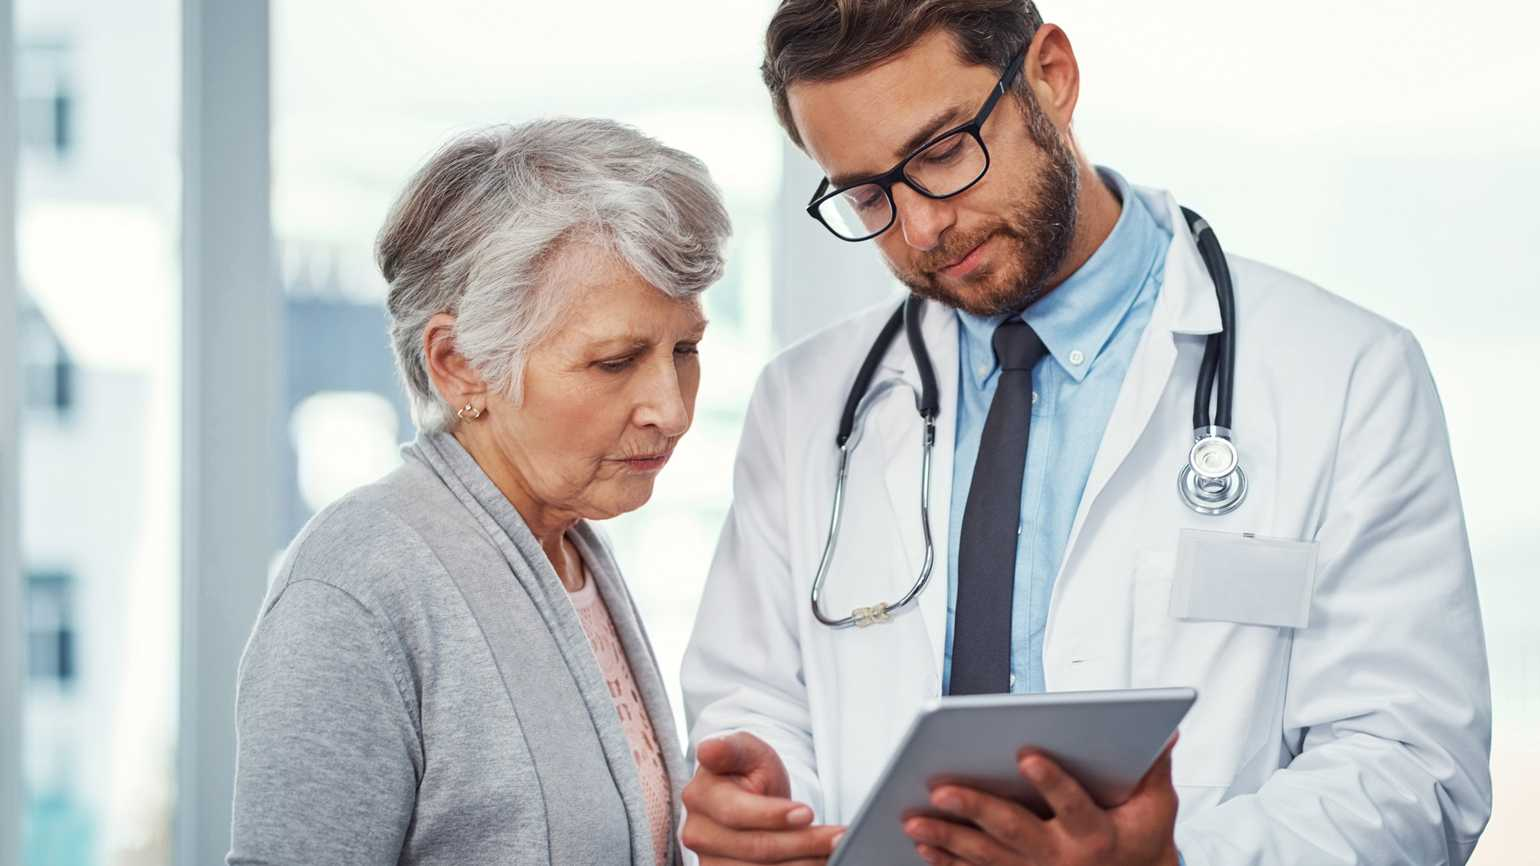 5 Things to Know Before a Doctor's Appointment